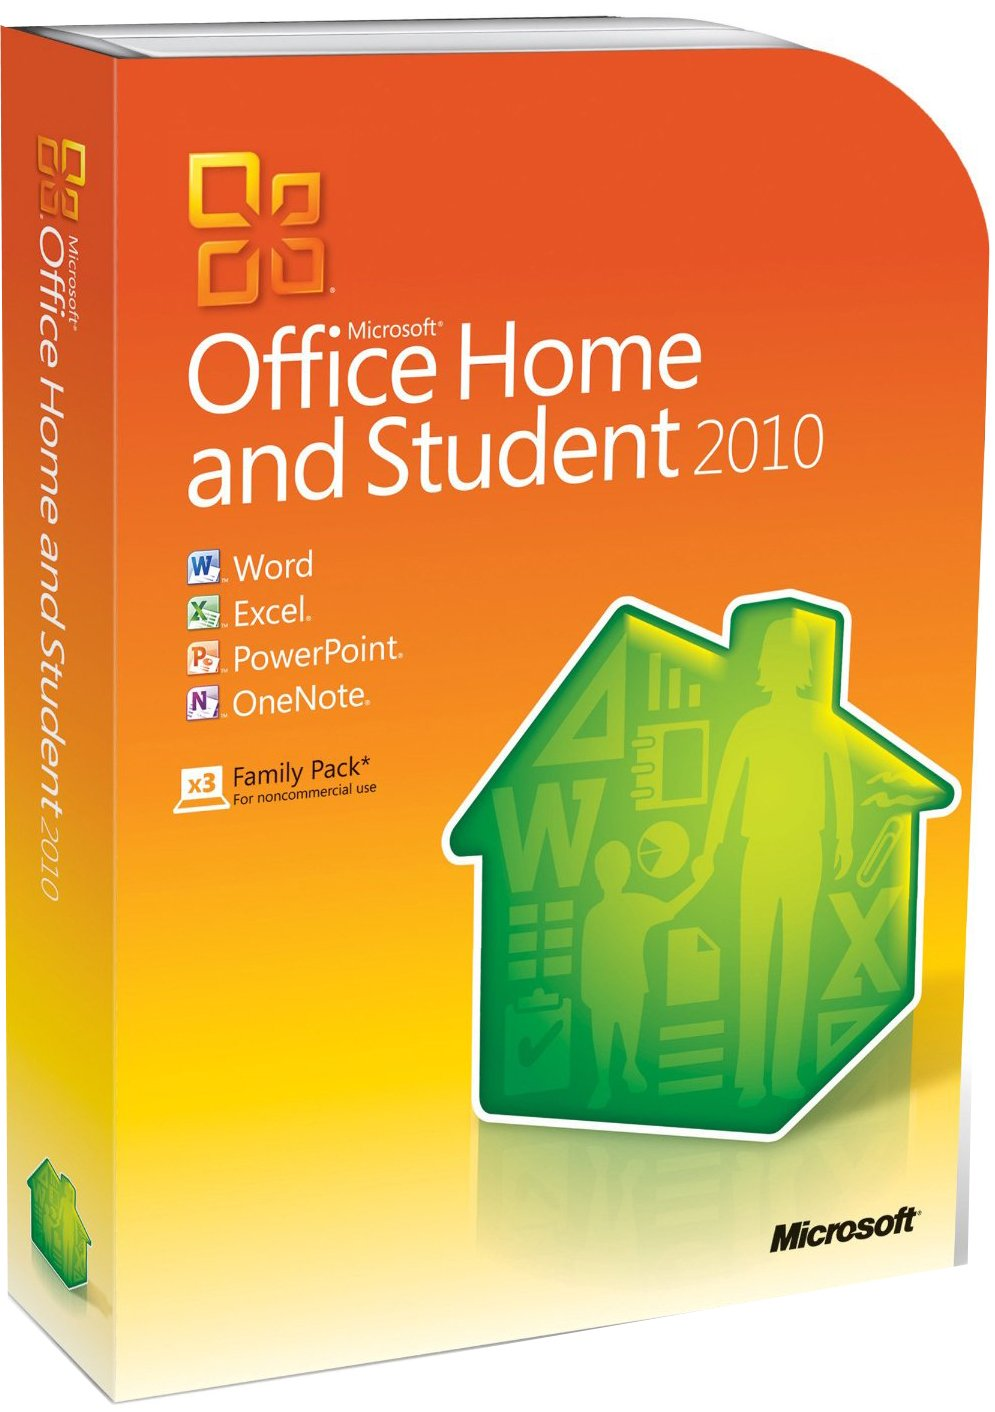 Microsoft Office Home and Student 2010 (3 Users, PC): Amazon.co.uk ...